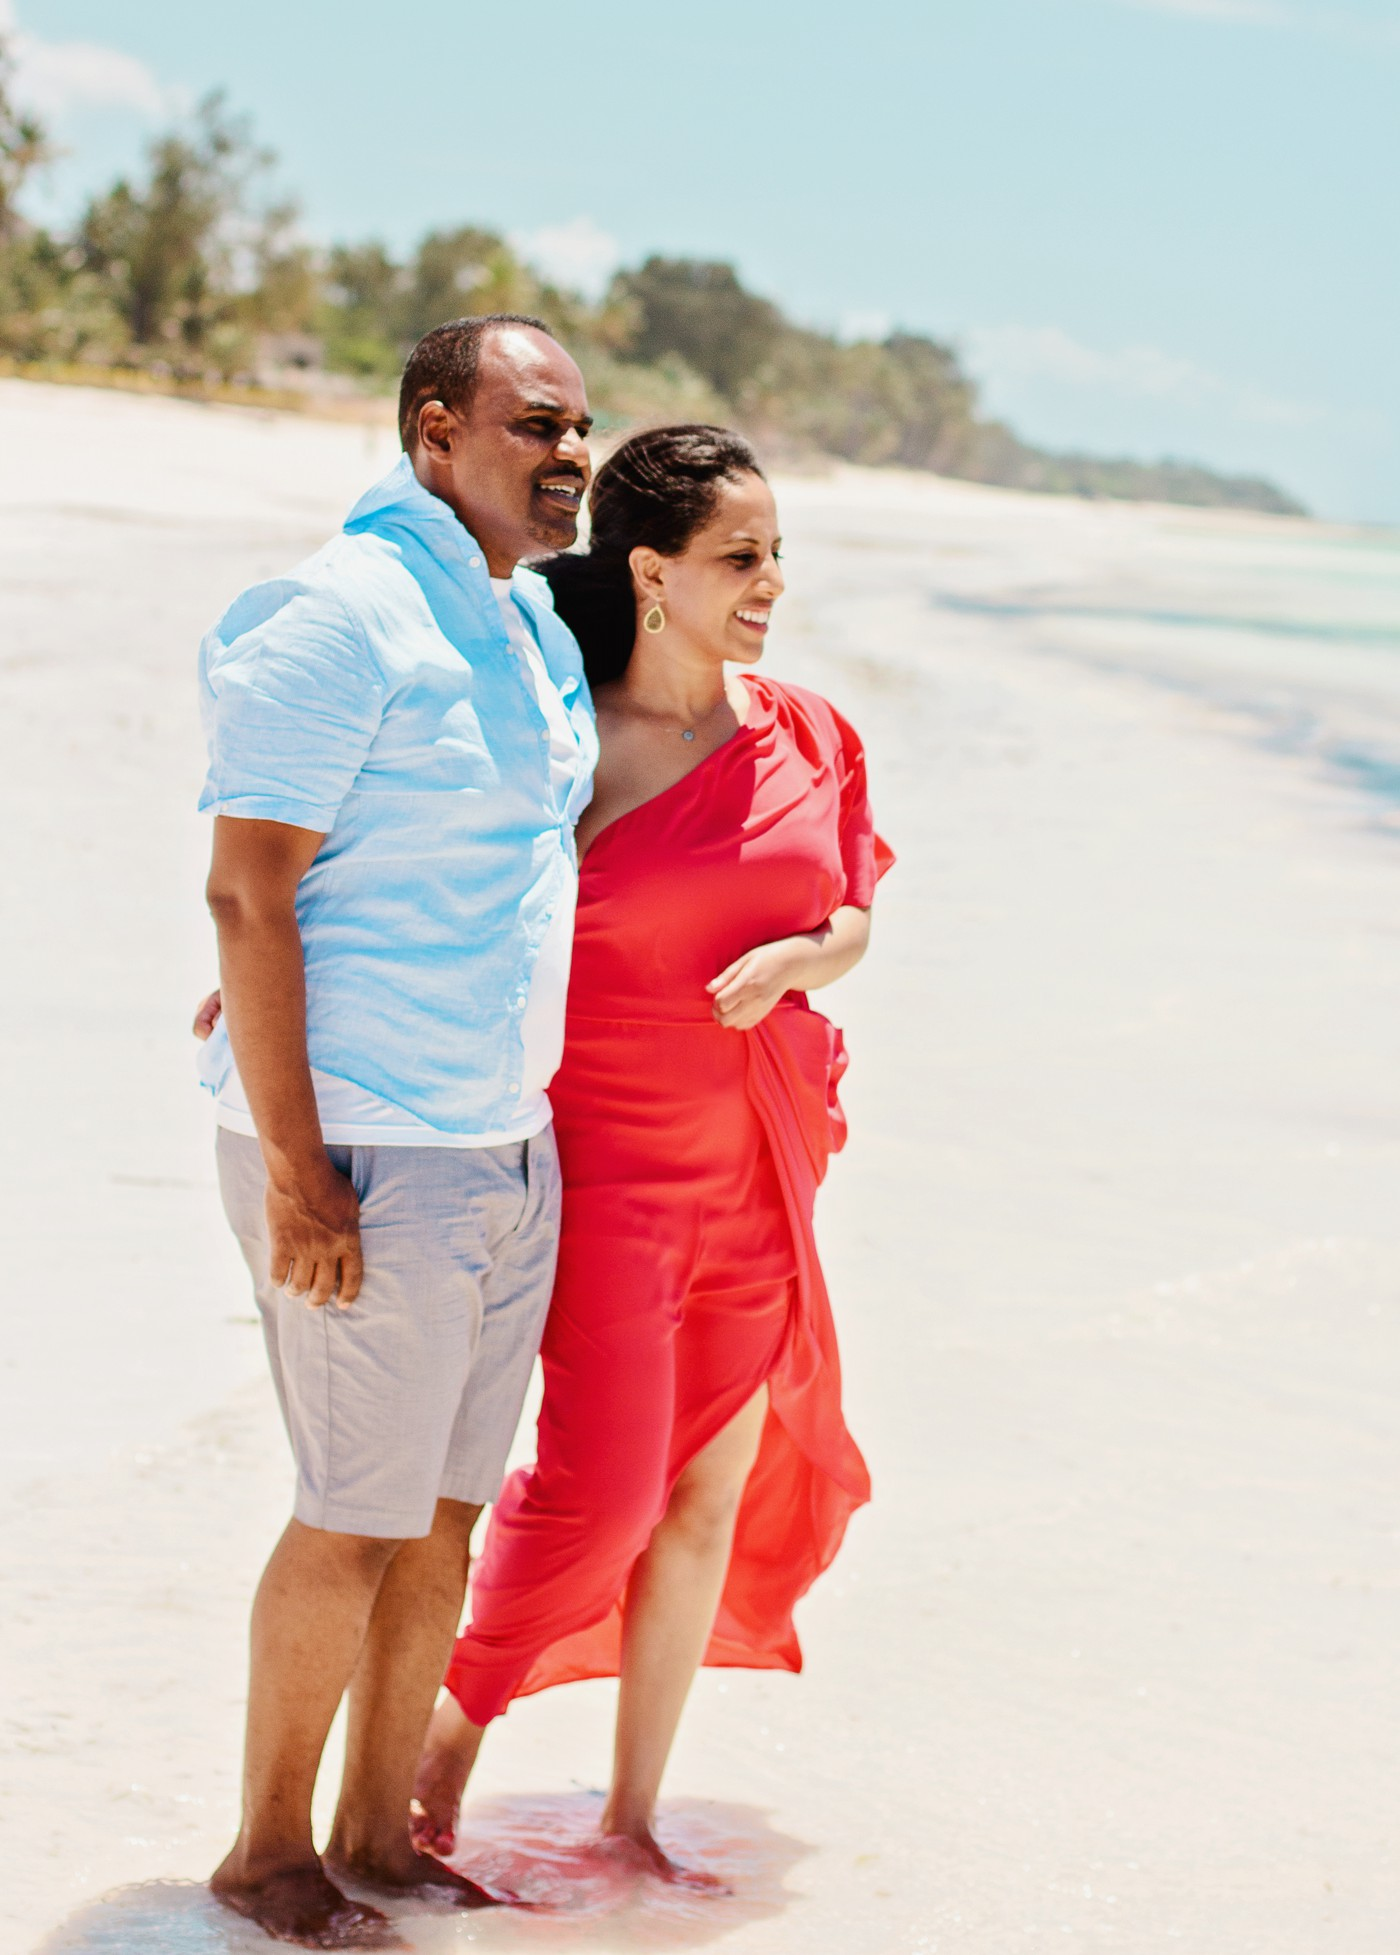 Forty Thieves Beach Diani Love story 52.jpg